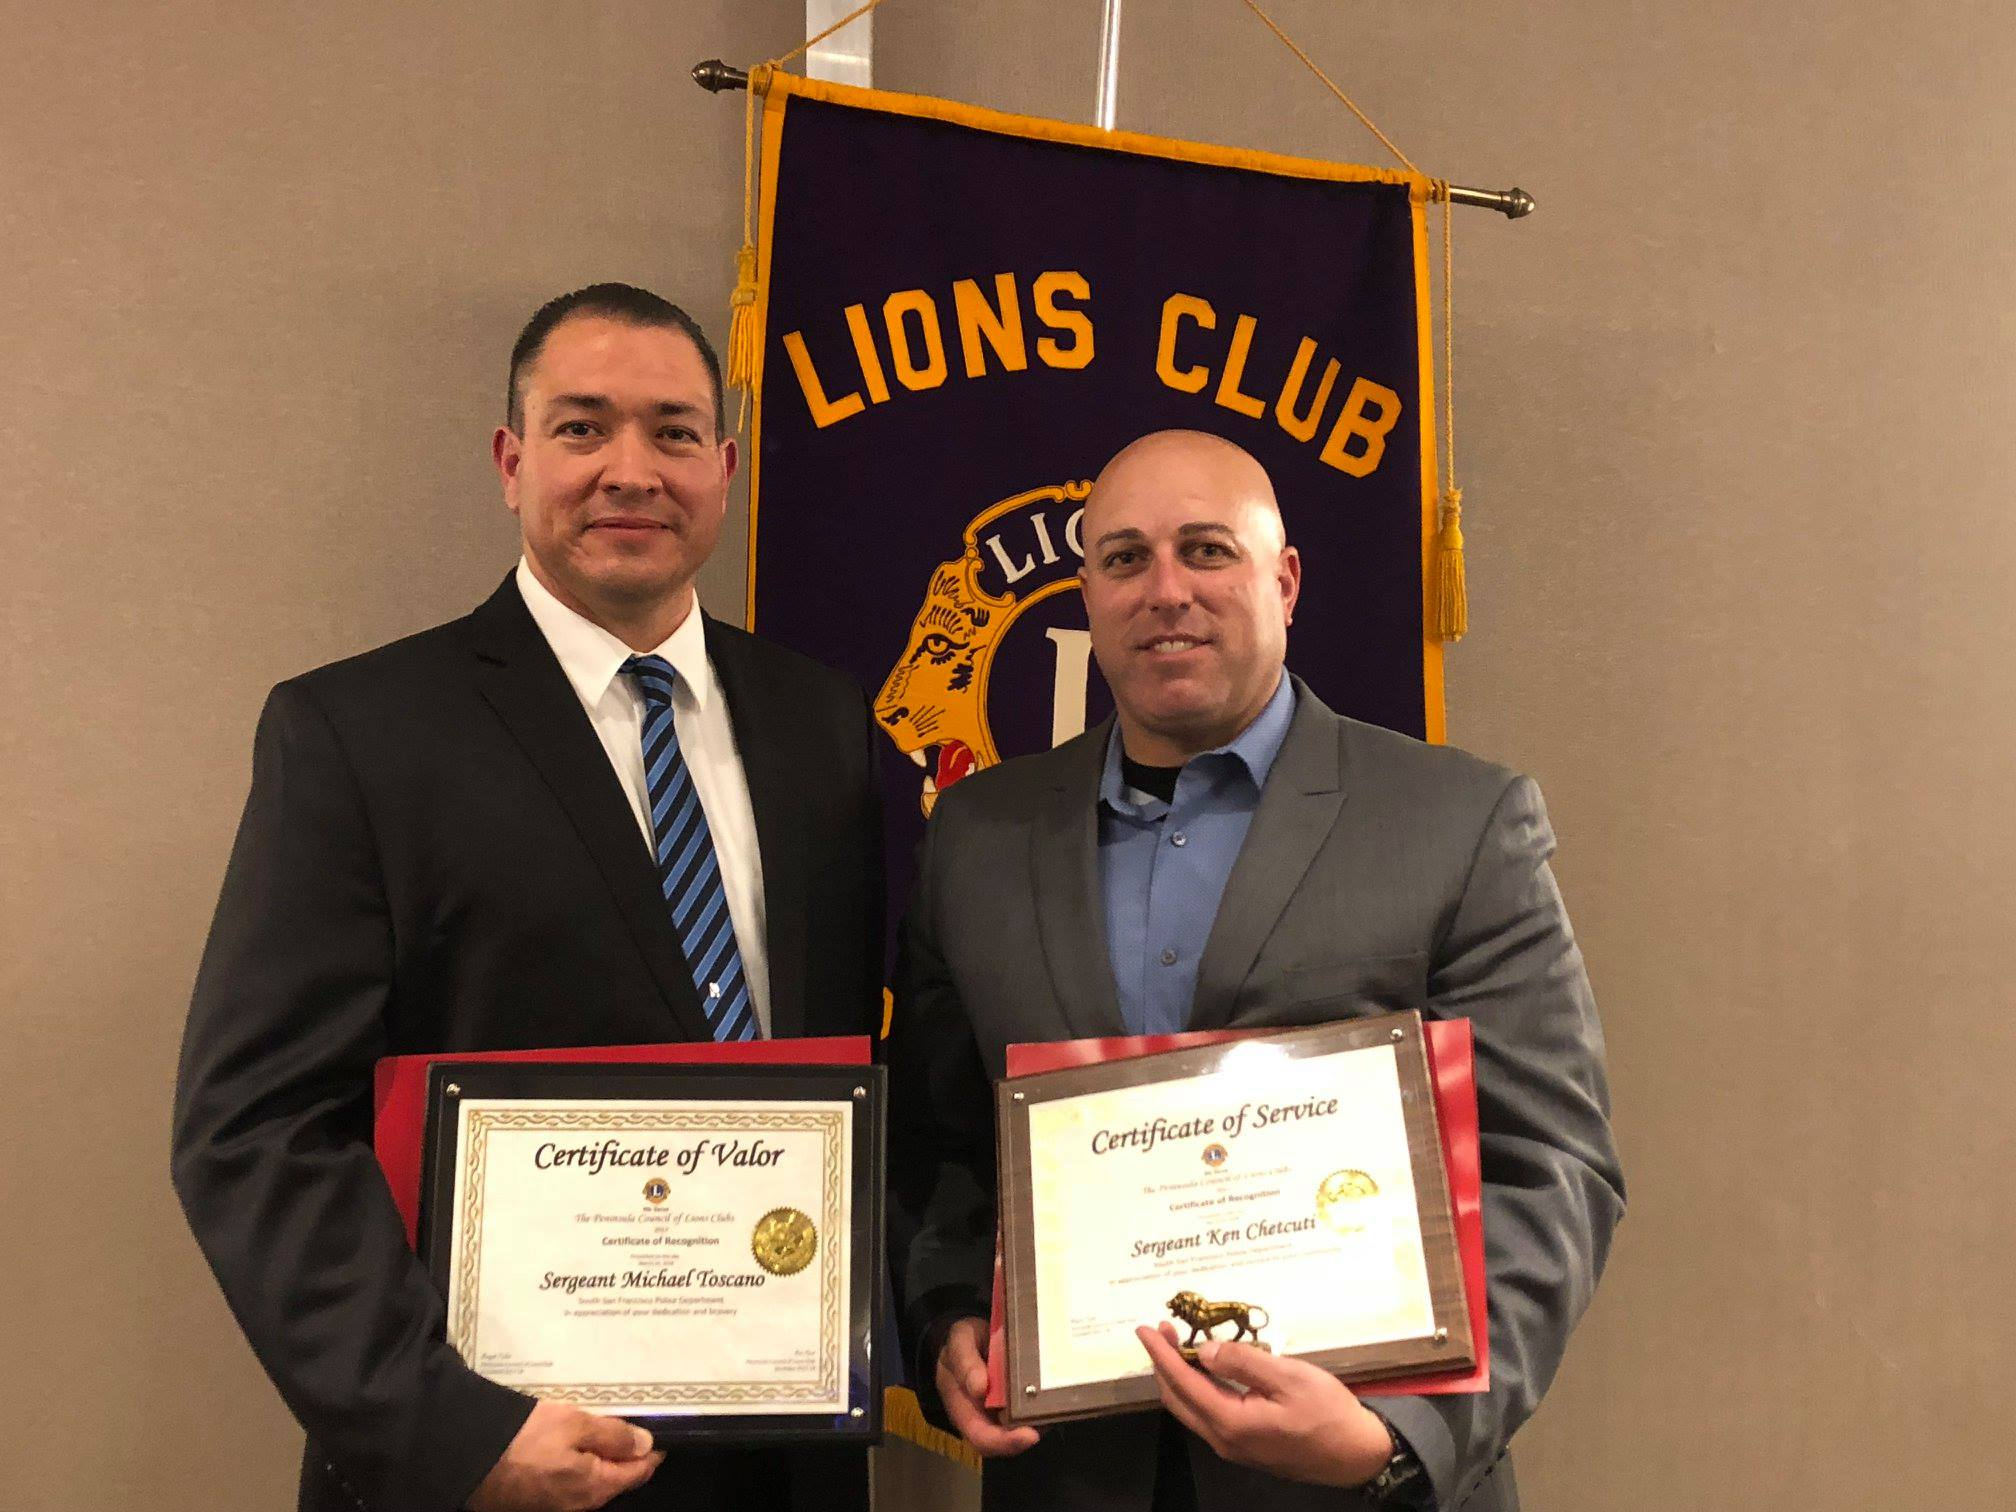 Peninsula Council of Lions Clubs Award South San Francisco Police Sergeants Chetcuti and Toscano at Annual Ceremony